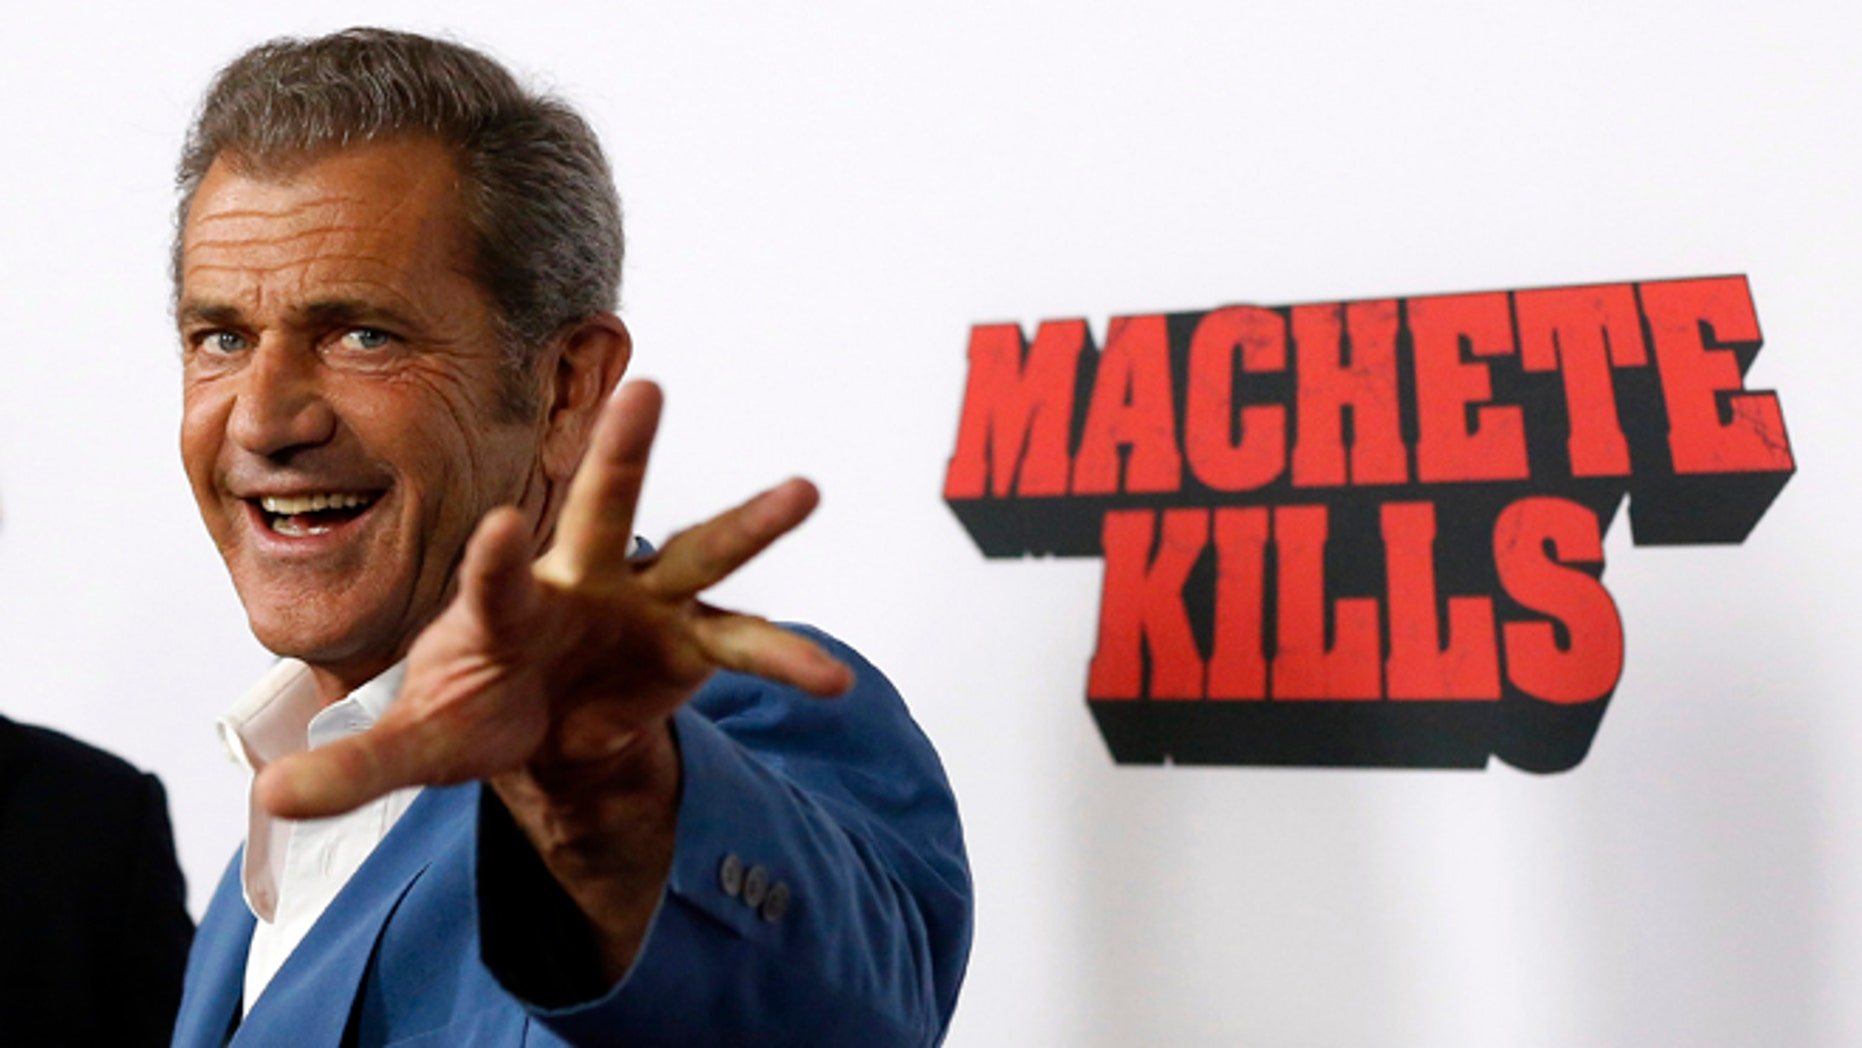 """Cast member Mel Gibson poses at the premiere of """"Machete Kills"""" in Los Angeles, California October 2, 2013. The movie opens in the U.S. on October 11.   REUTERS/Mario Anzuoni  (UNITED STATES - Tags: ENTERTAINMENT PROFILE) - RTR3FJHD"""